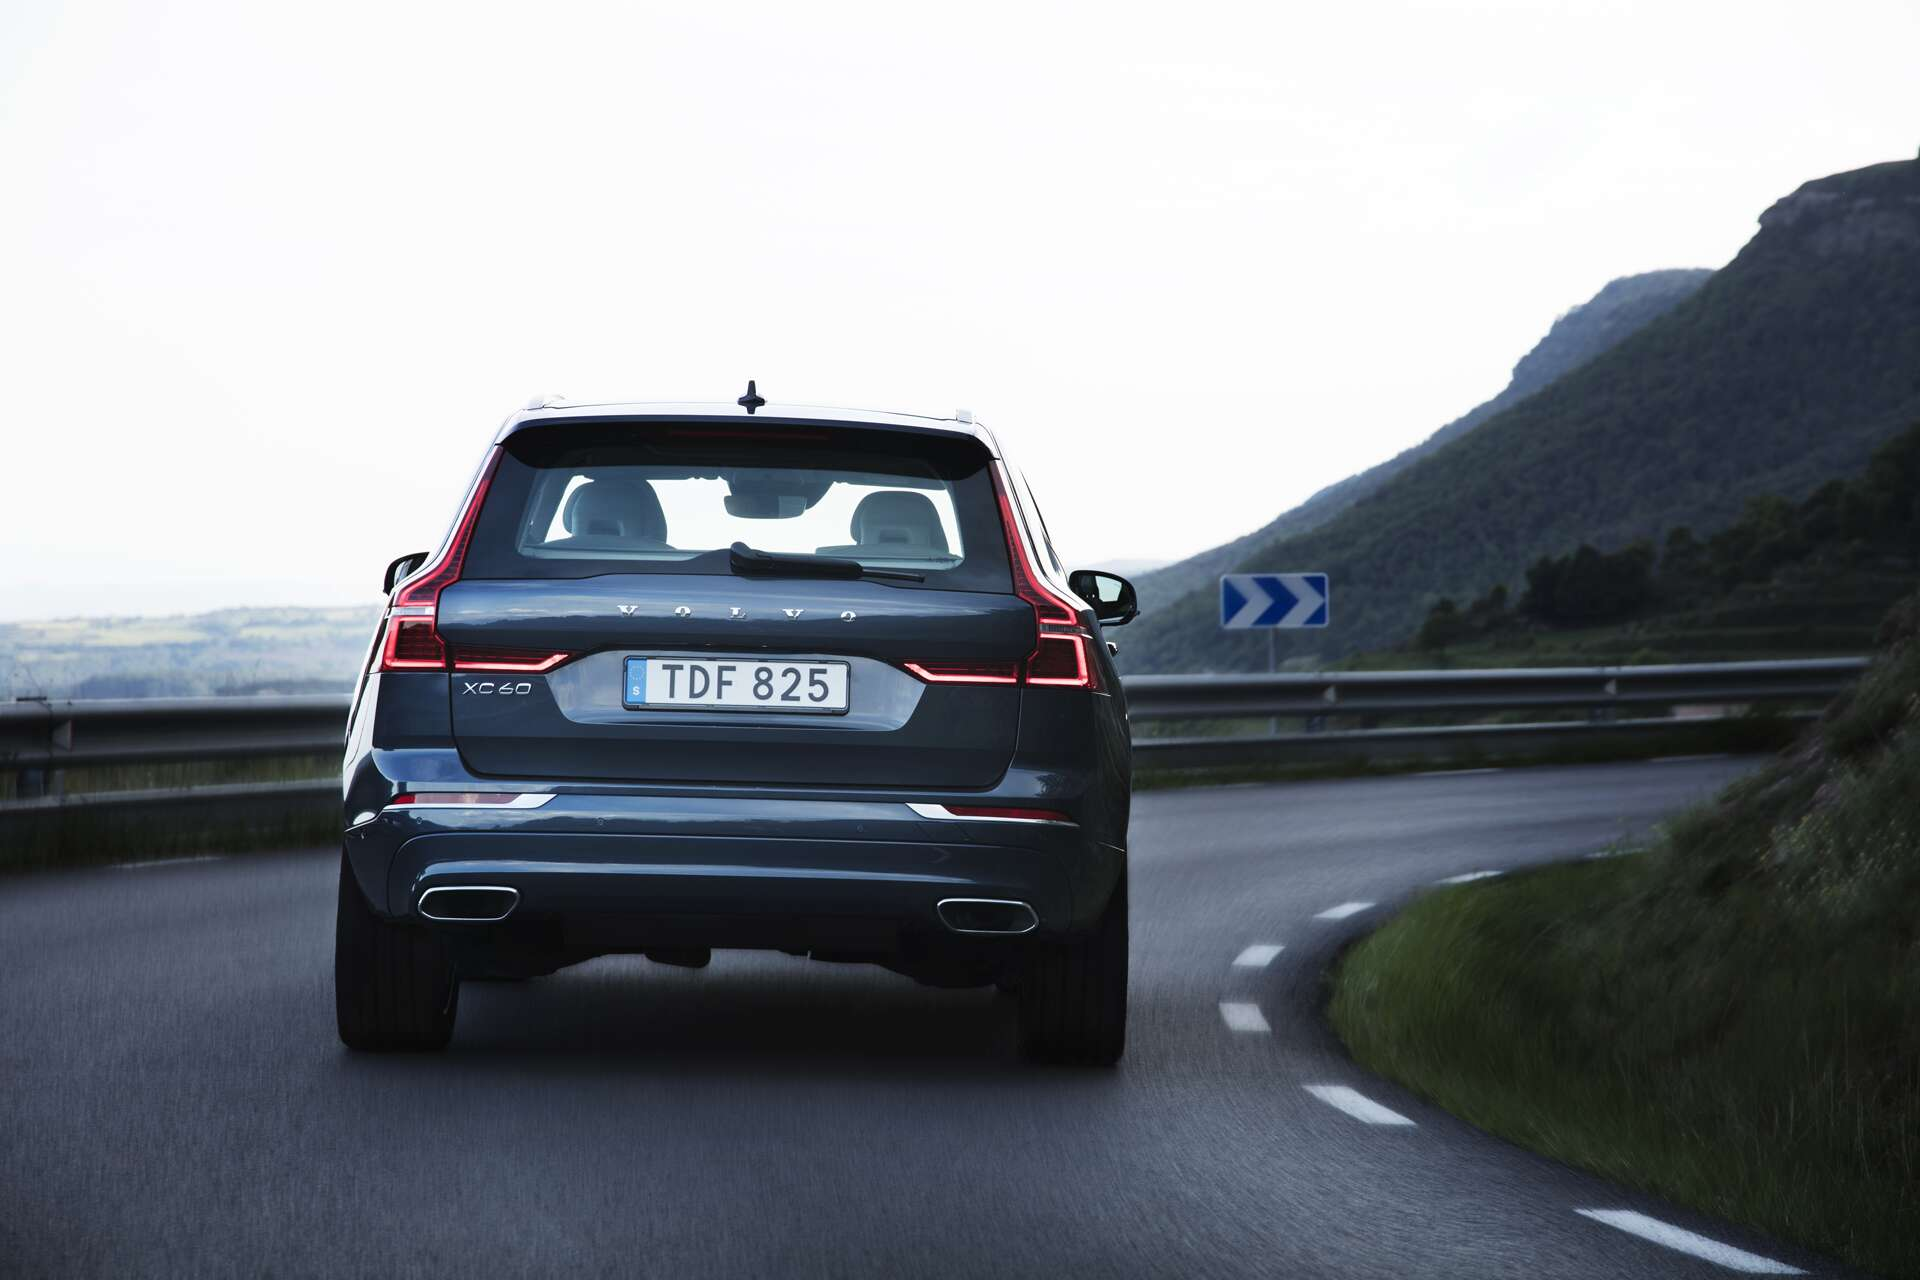 driving cr first makes front short review inlinehero suv consumer suvs falls reports crossover volvo but drive cars big promises